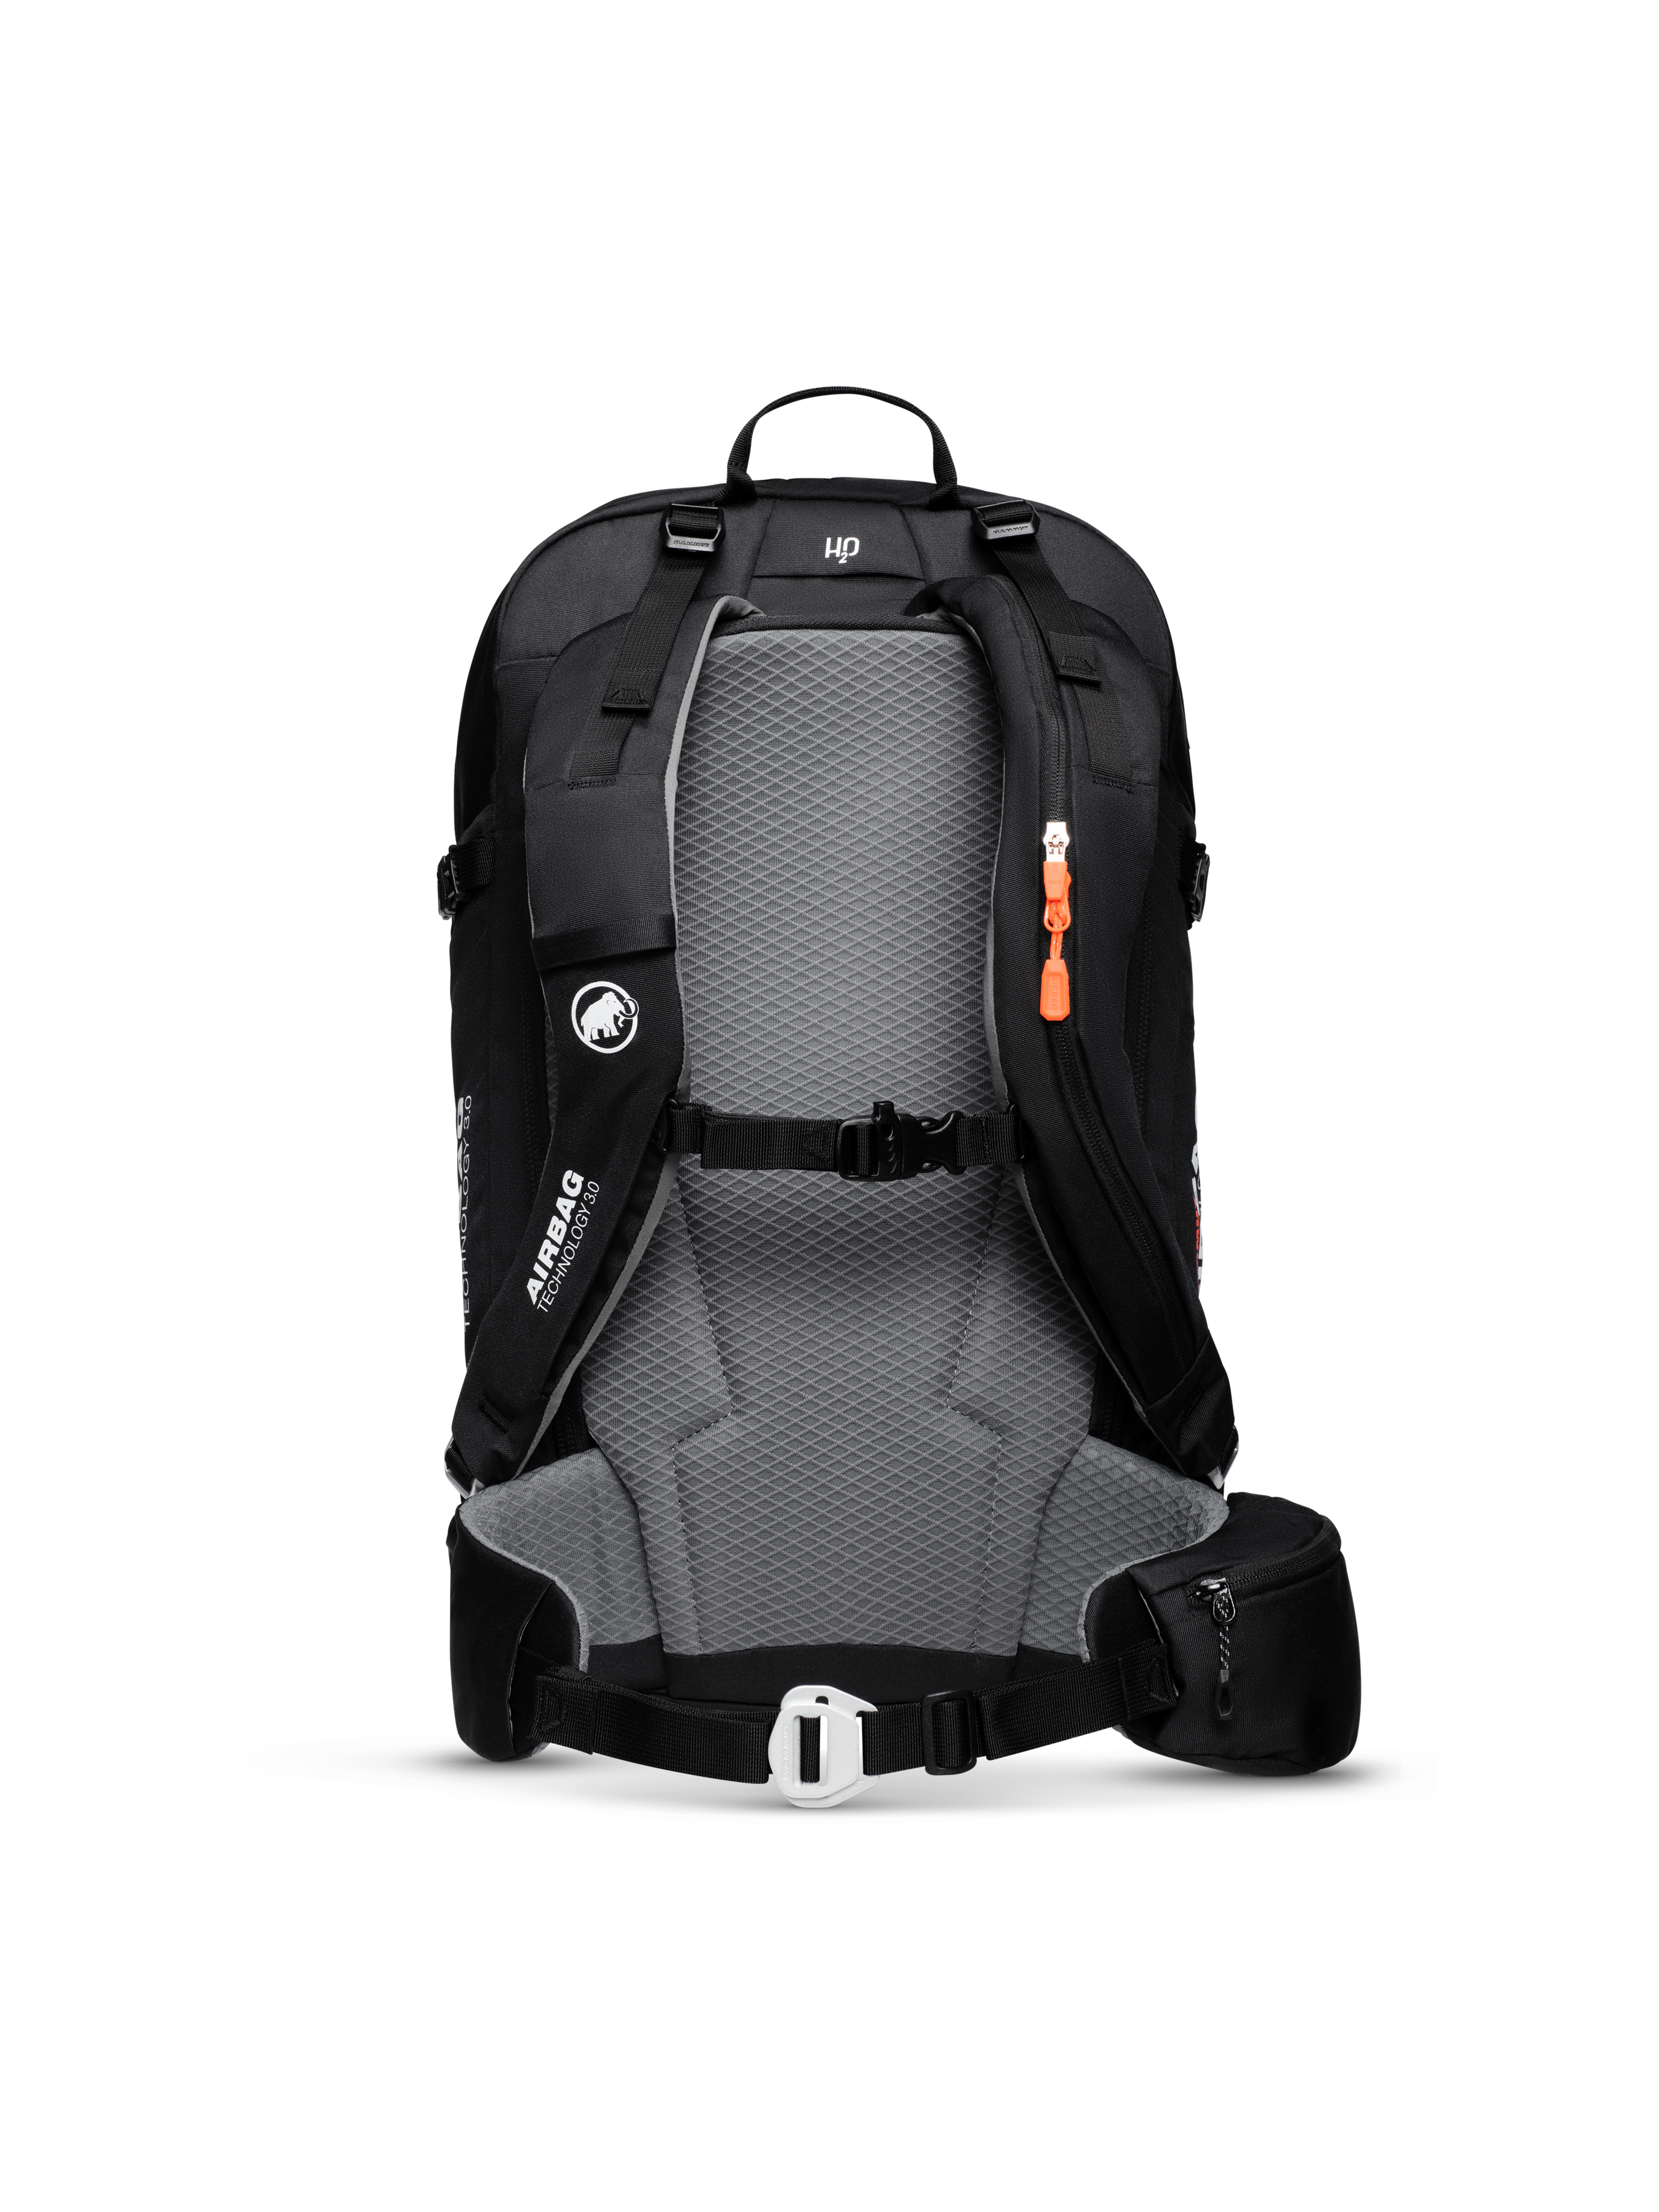 Pro X Removable Airbag 3.0 ready product image